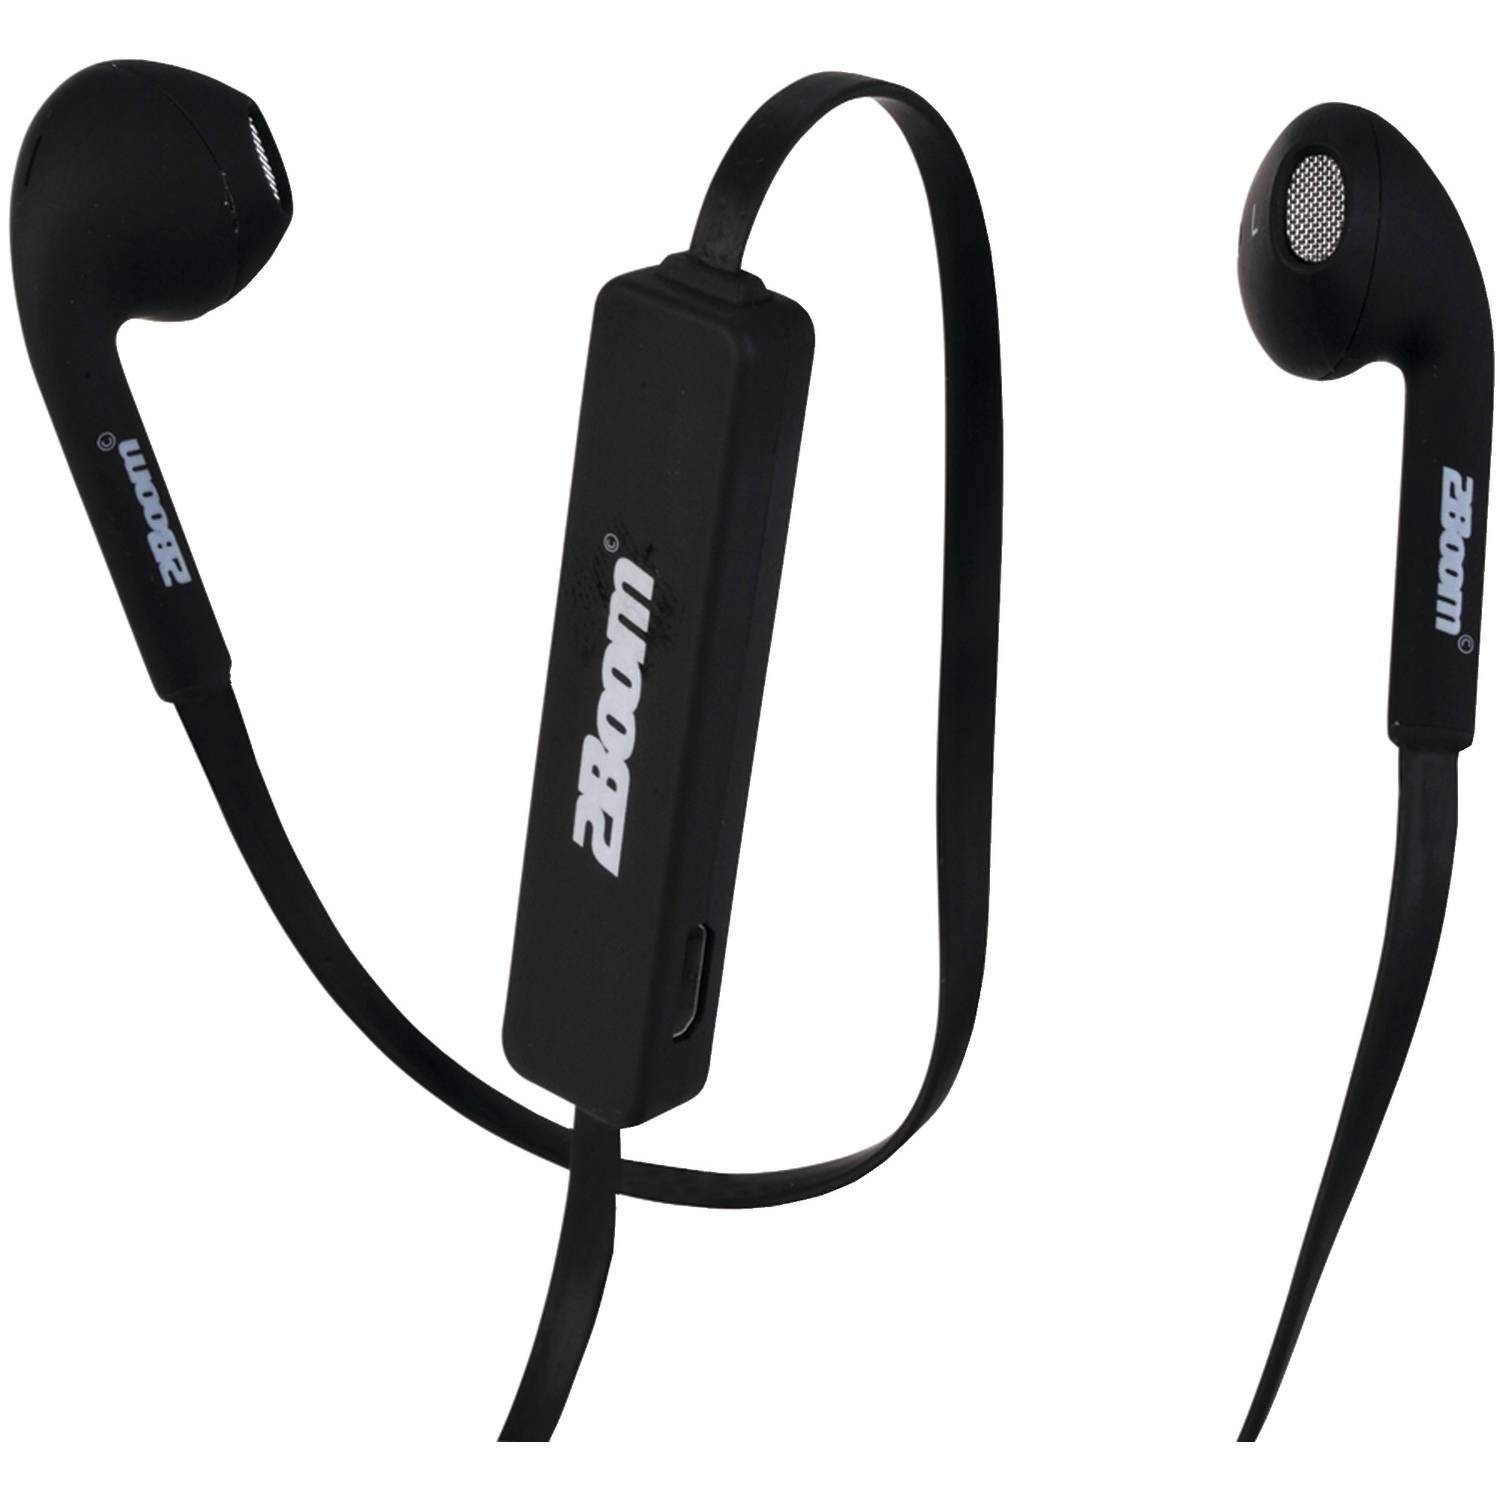 Image of 2Boom EPBT690K Bluetooth Noise-Canceling Earbuds with Microphone, Black